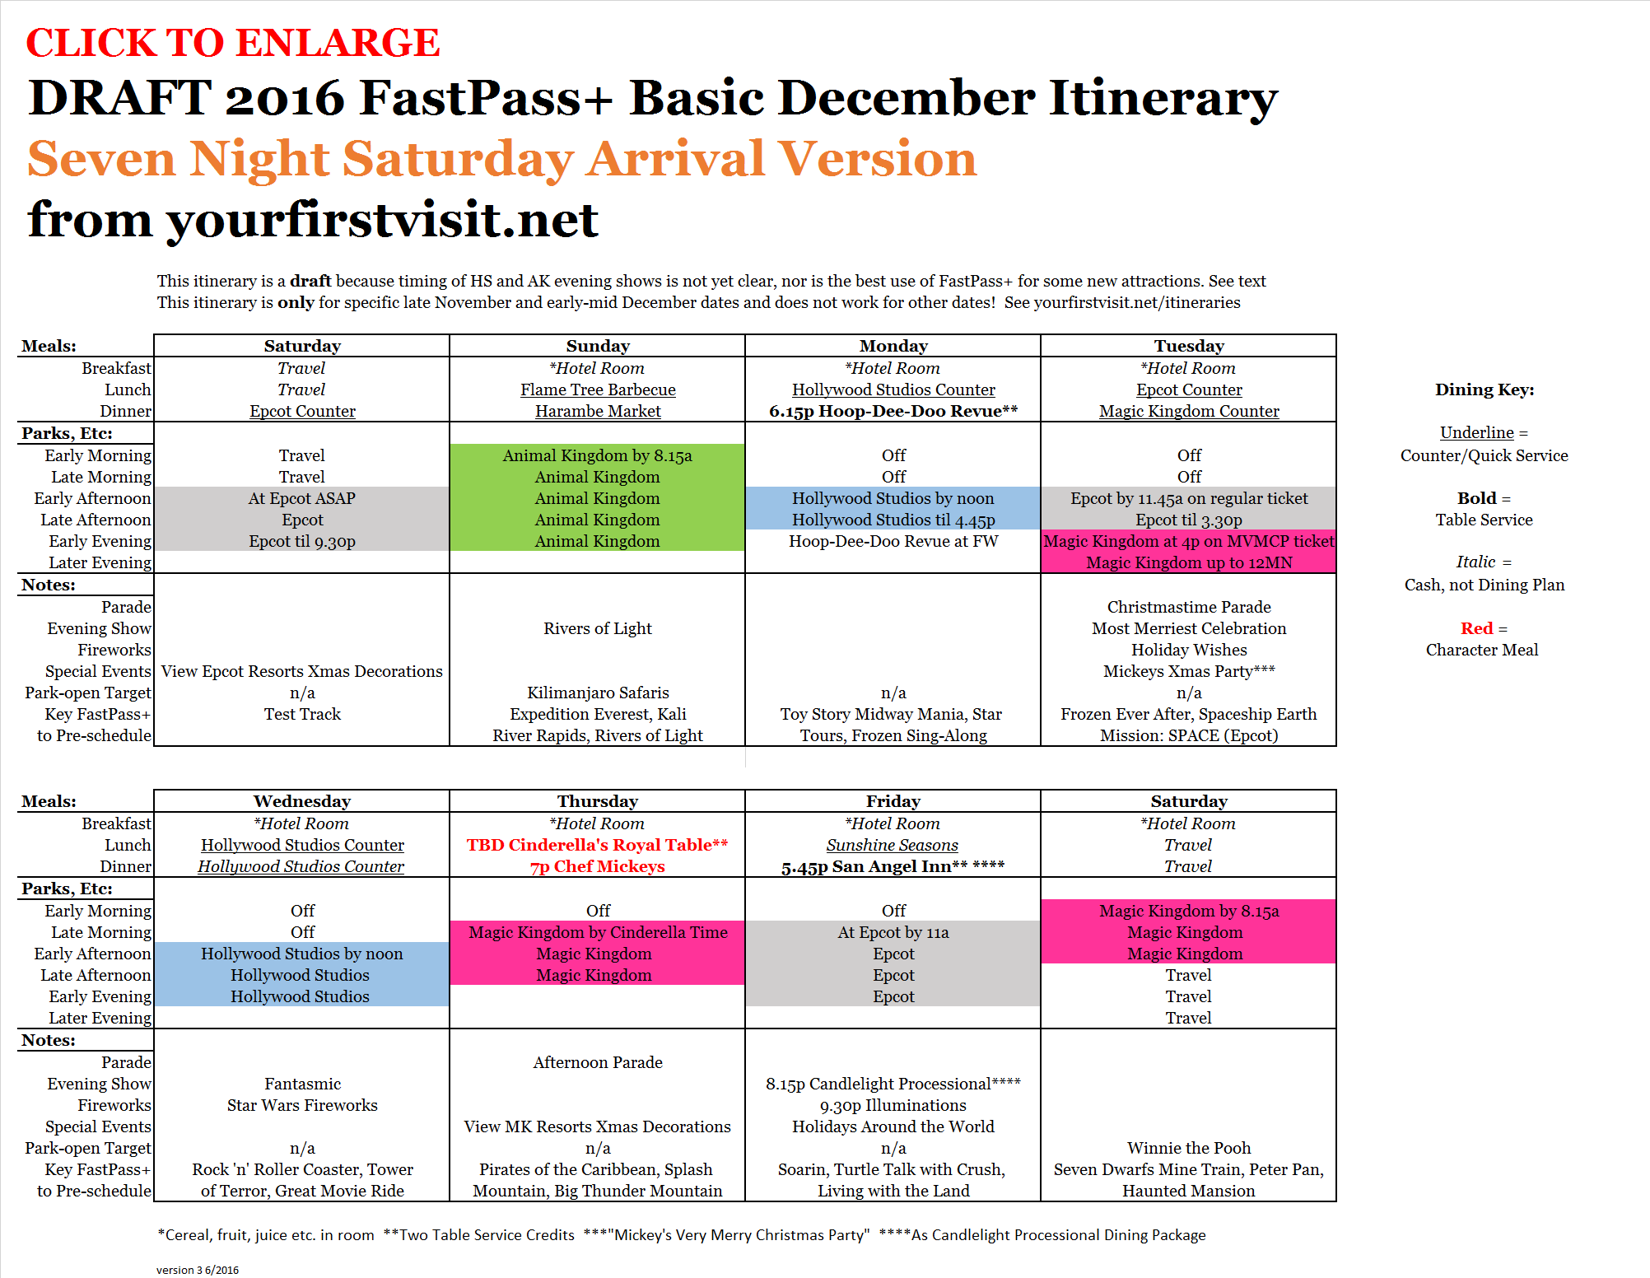 Seven Night  v3 Saturday Arrival Variant of Basic December 2016 FastPass+ Itinerary from yourfirstvisit.net